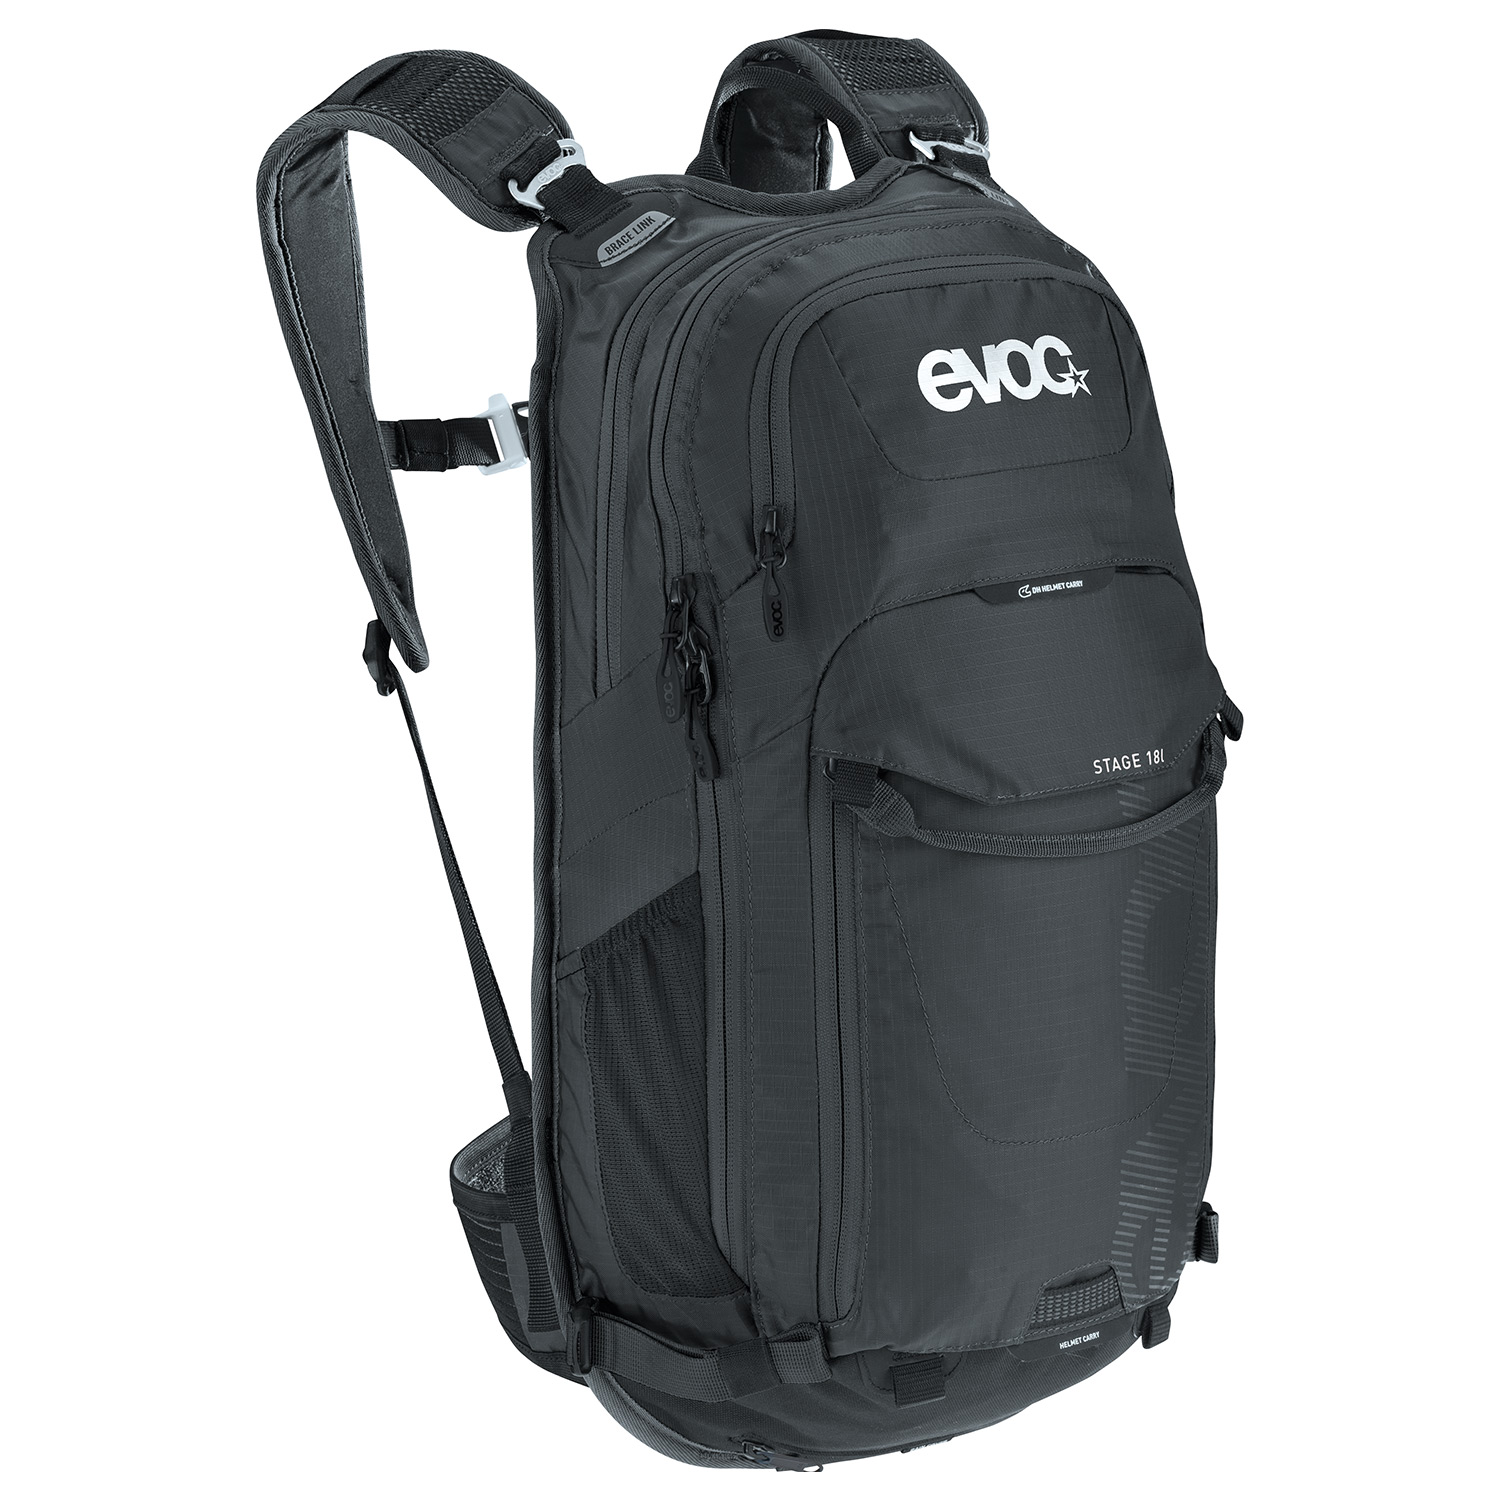 STAGE 18l - The EVOC STAGE 18l is a multi-faceted, technical daypack. The series is characterised by the BRACE LINK carrying system, which adapts to the wearer's individual shoulder width.